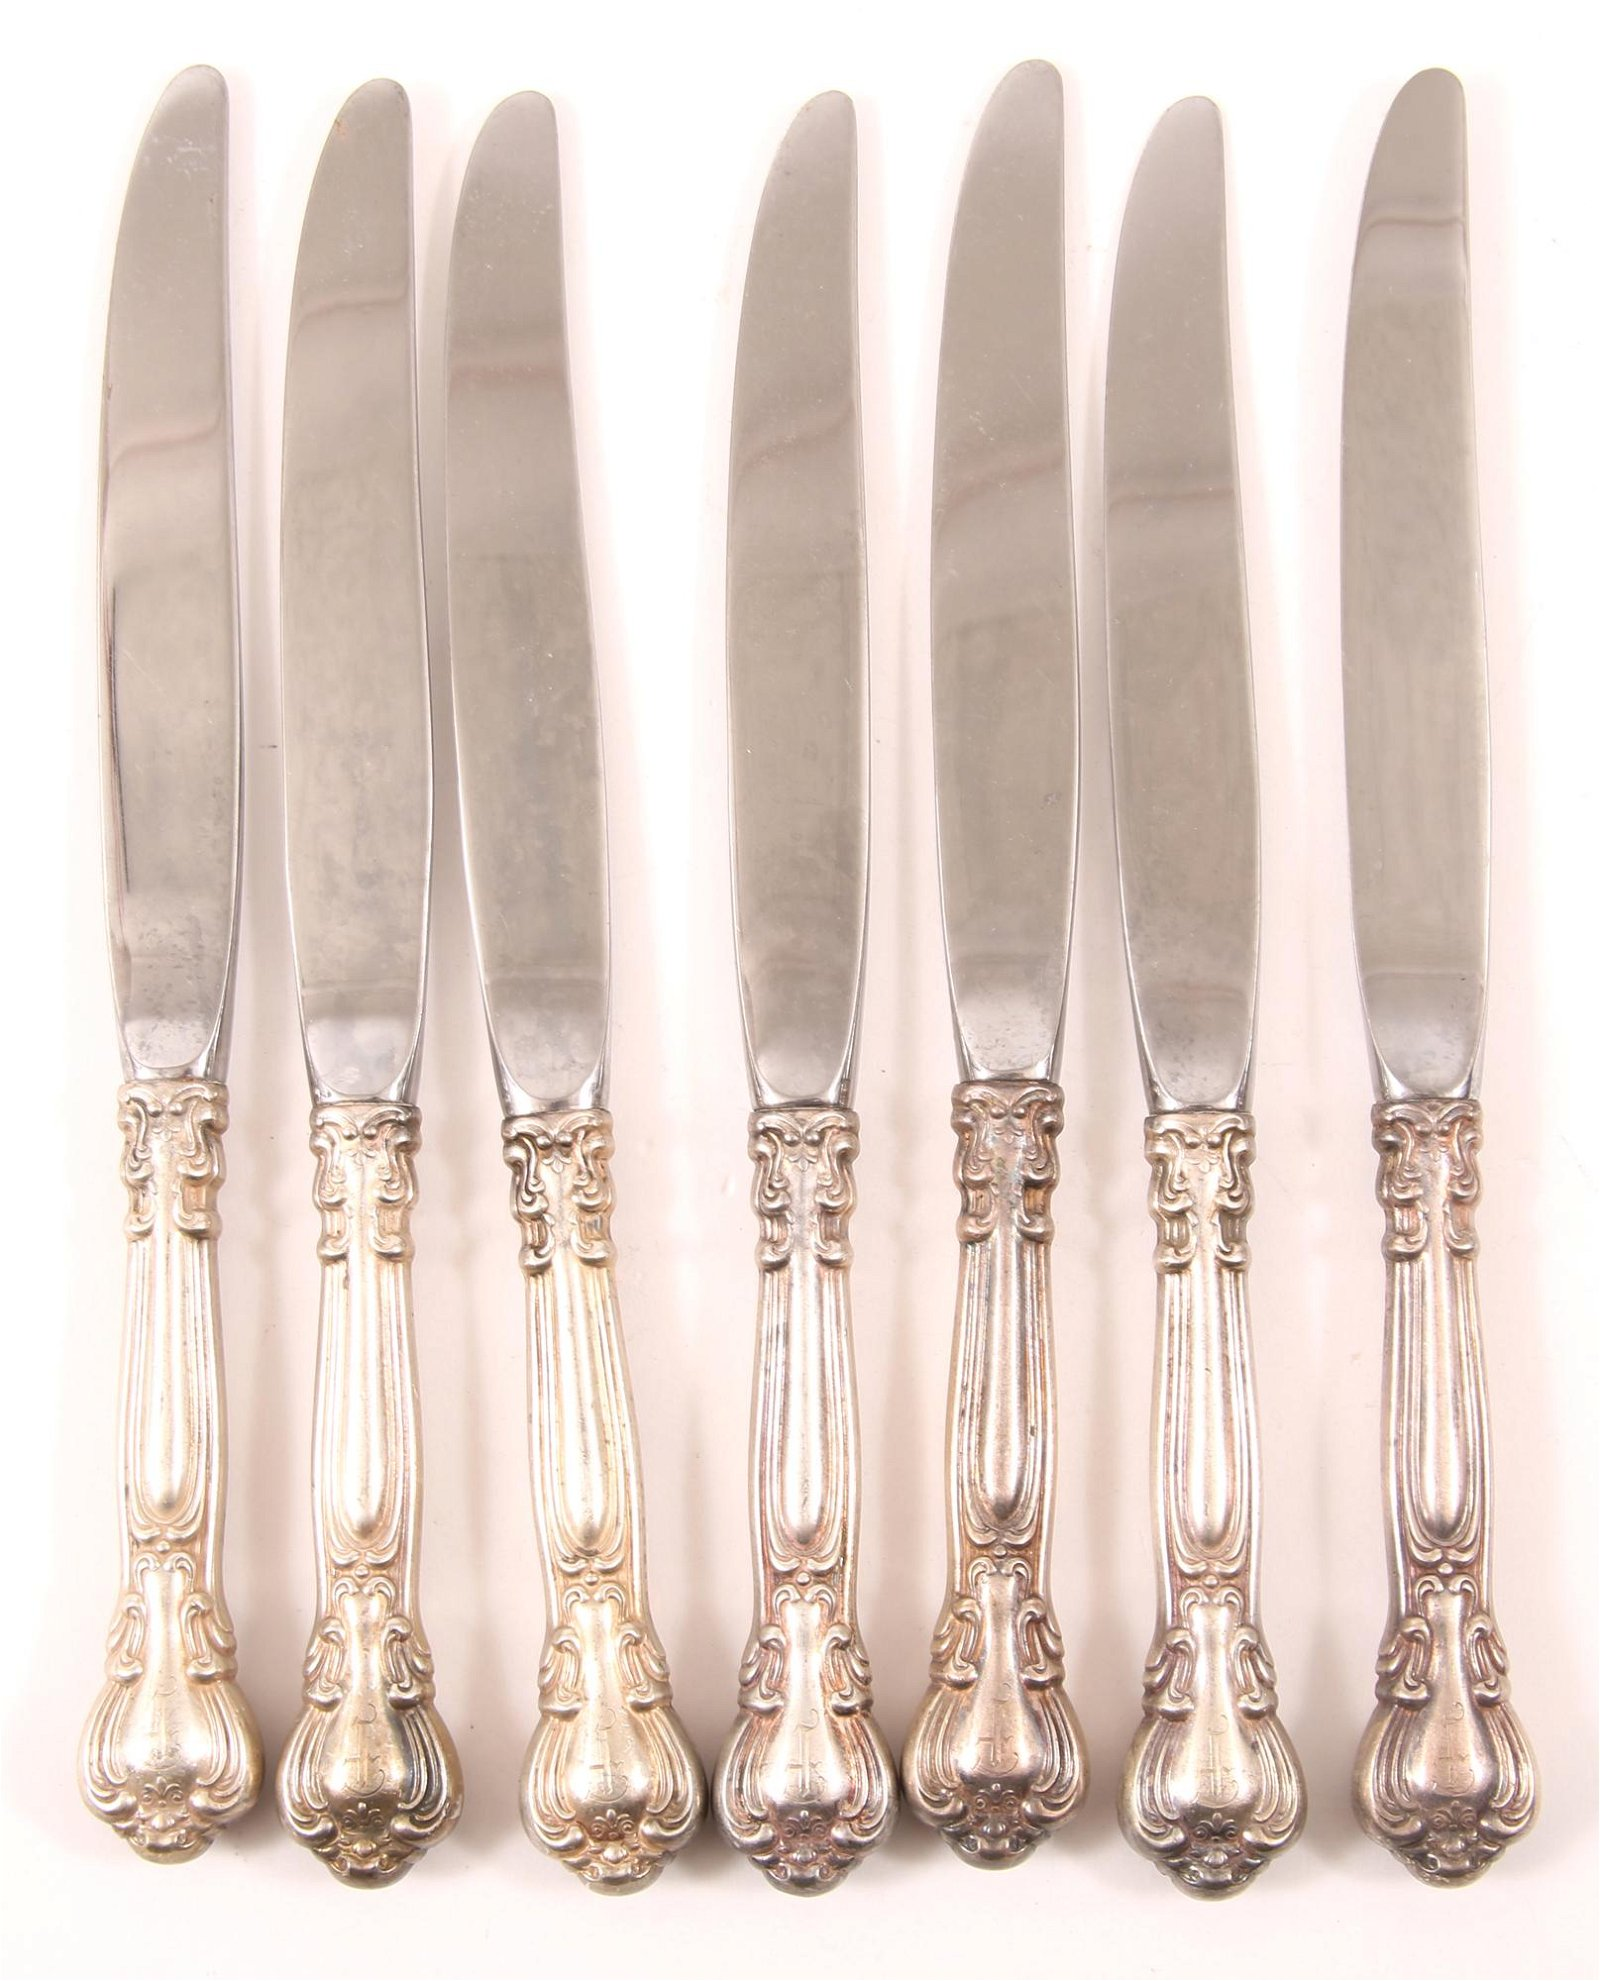 GORHAM STERLING SILVER CHANTILLY KNIVES - LOT OF 7